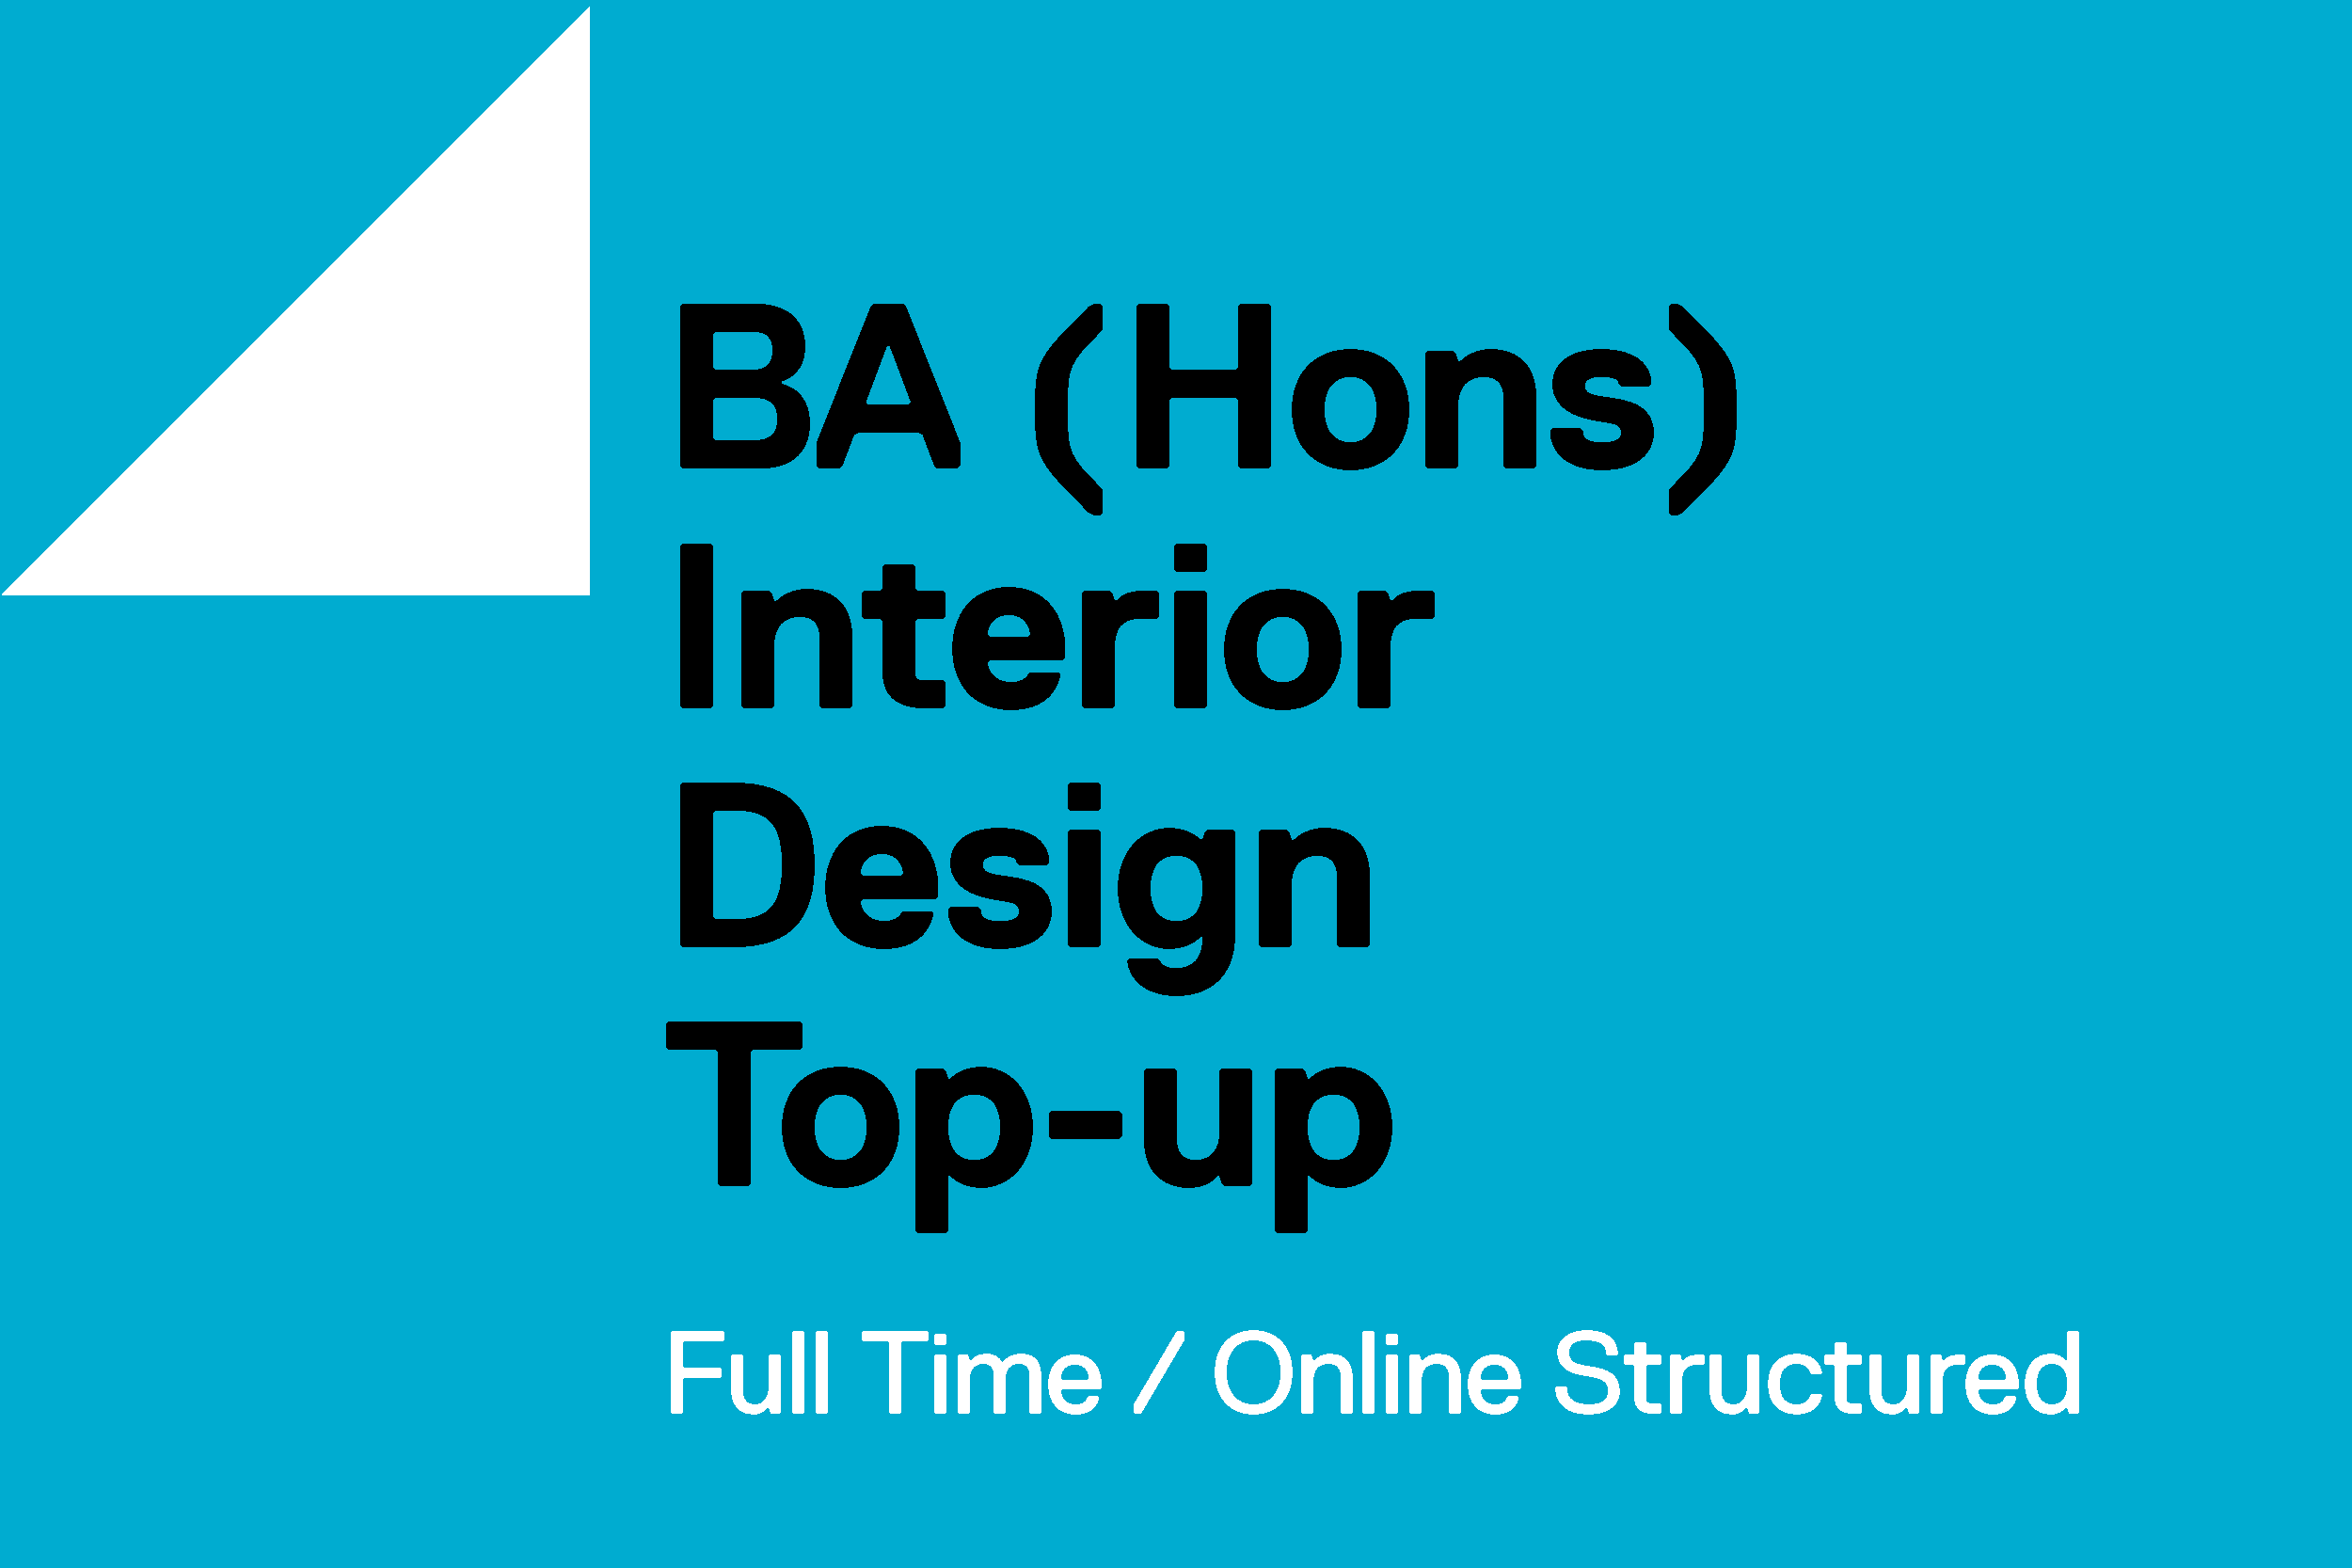 Thumbnail Graphic BA (Hons)Top-up Interior Design